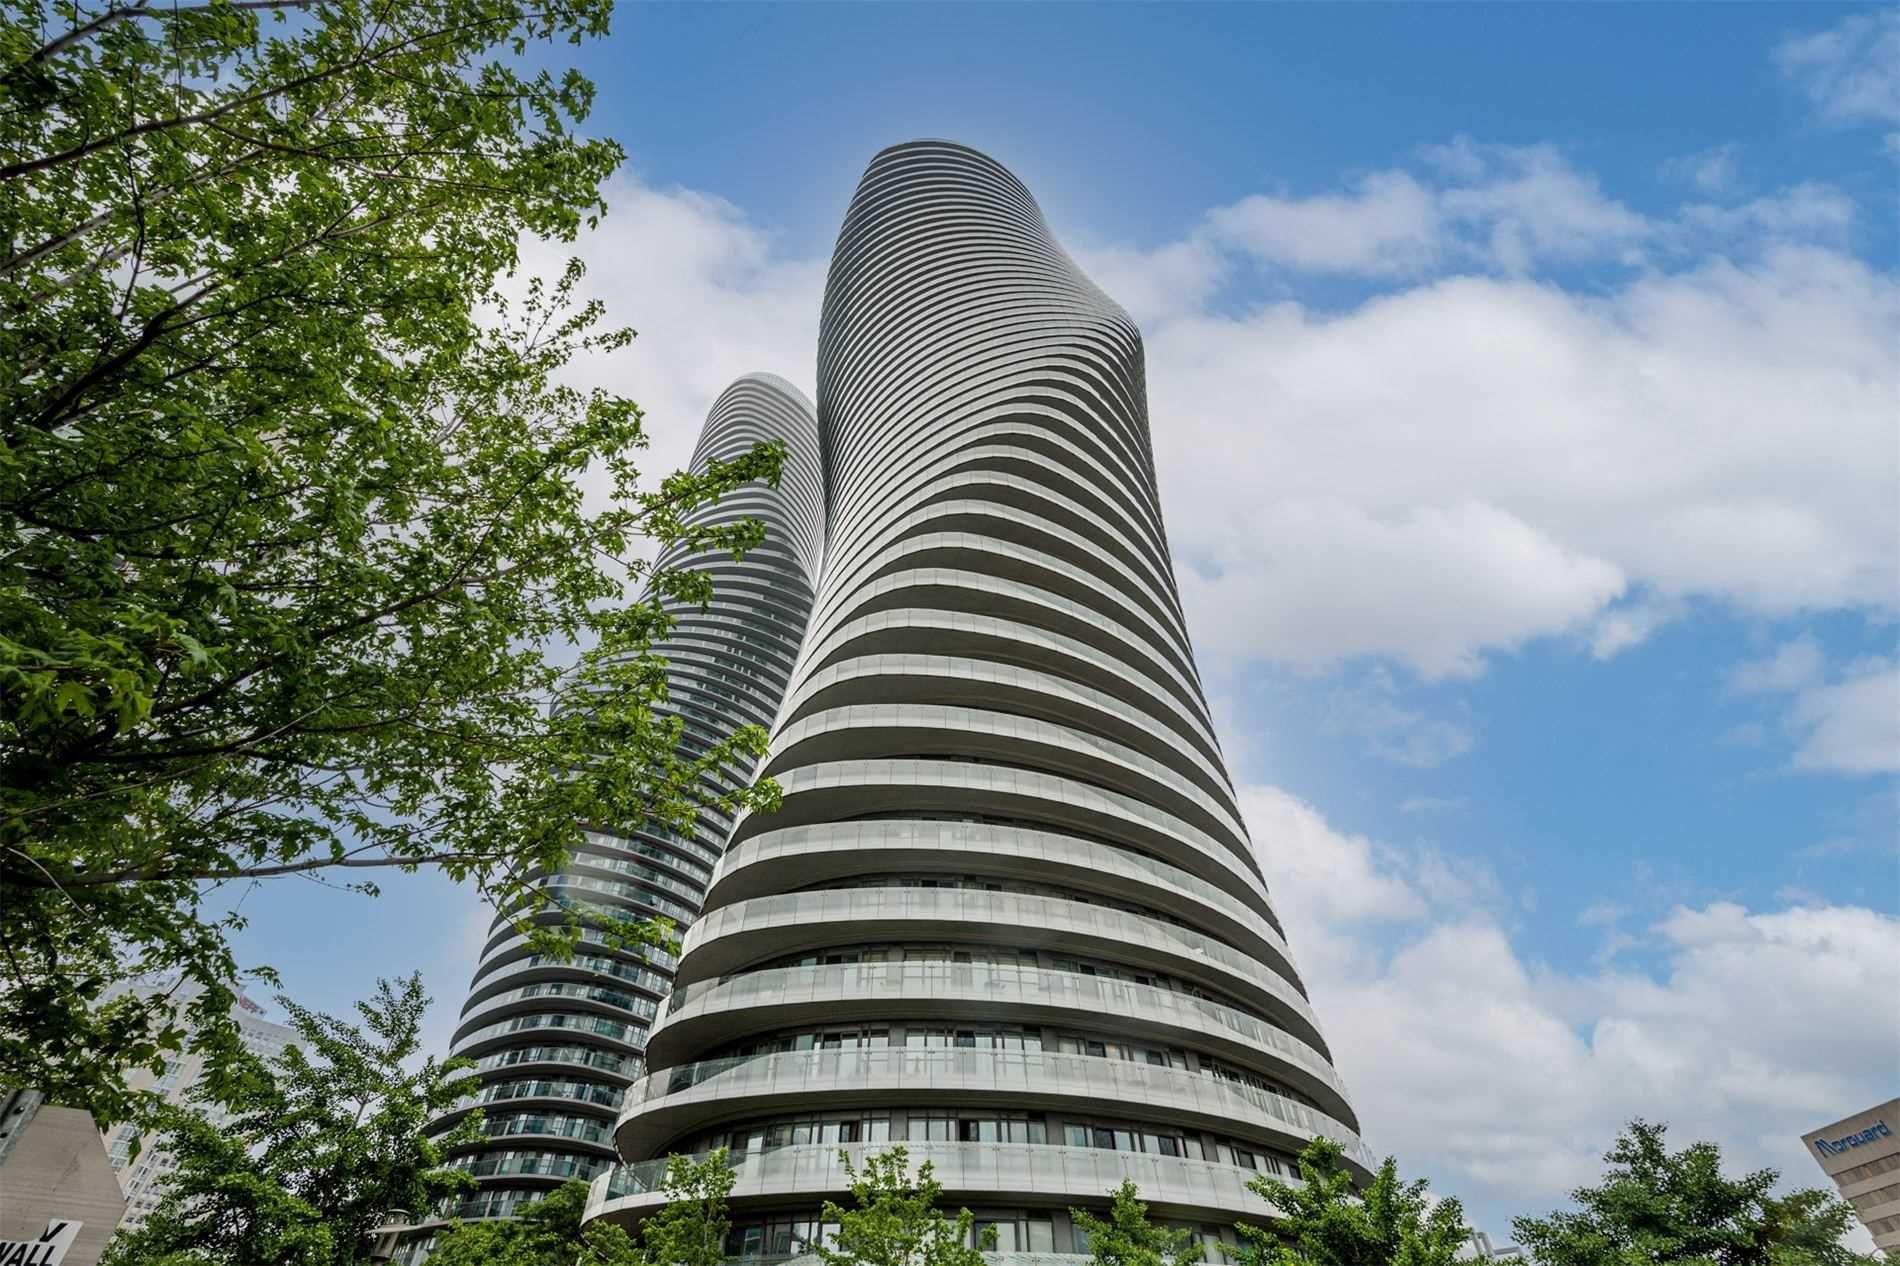 50 Absolute Ave, unit 4408 for sale in Toronto - image #1